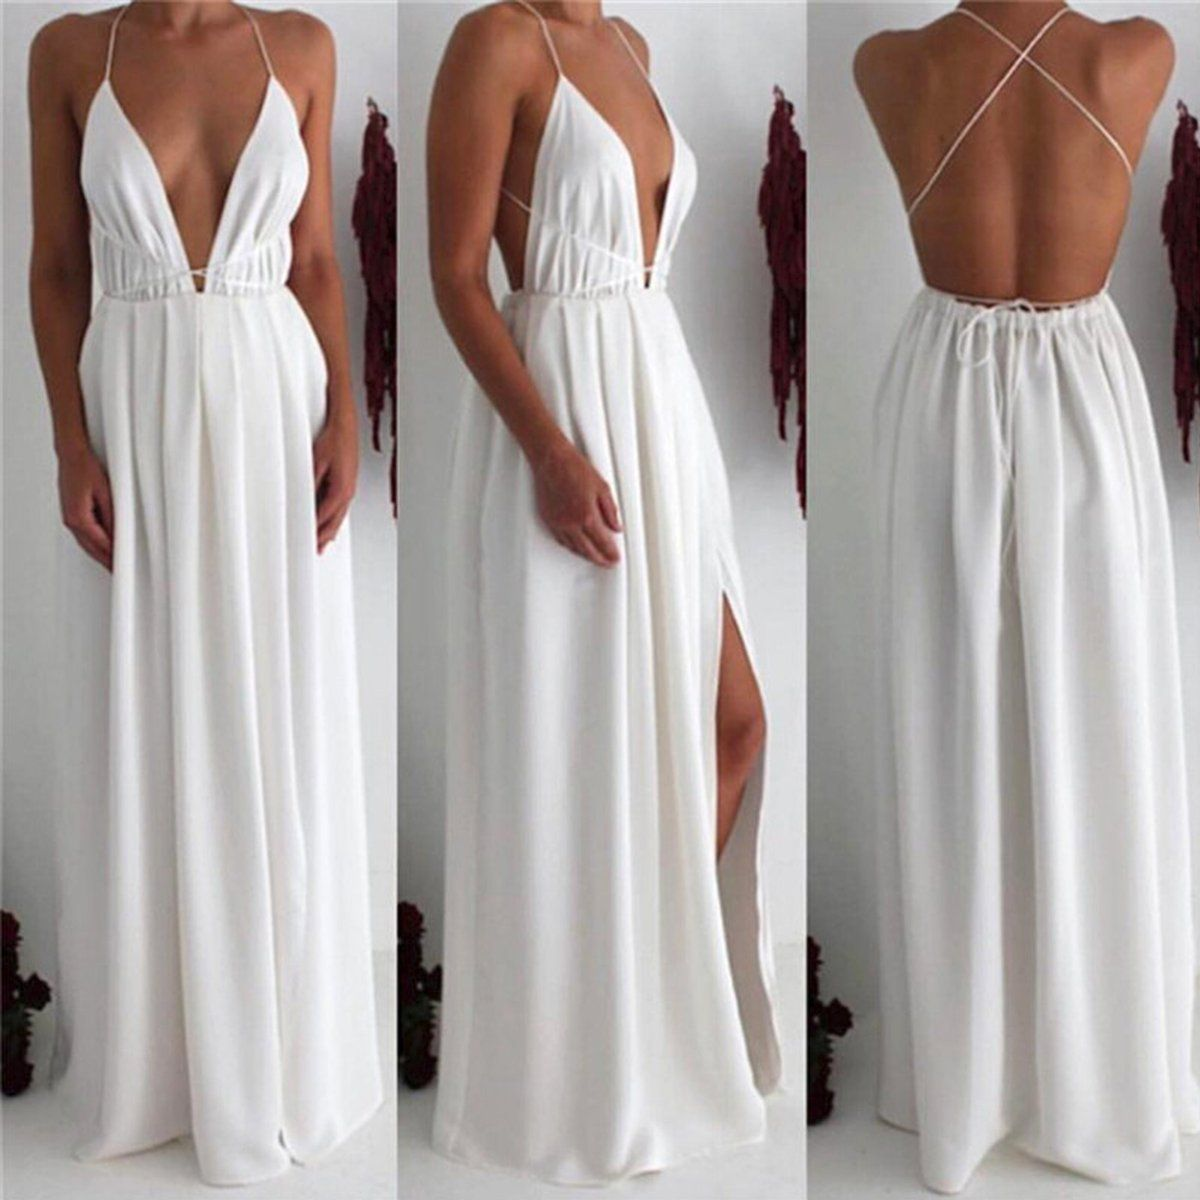 Charming white chiffon prom dresssexy cross back party dressdeep v